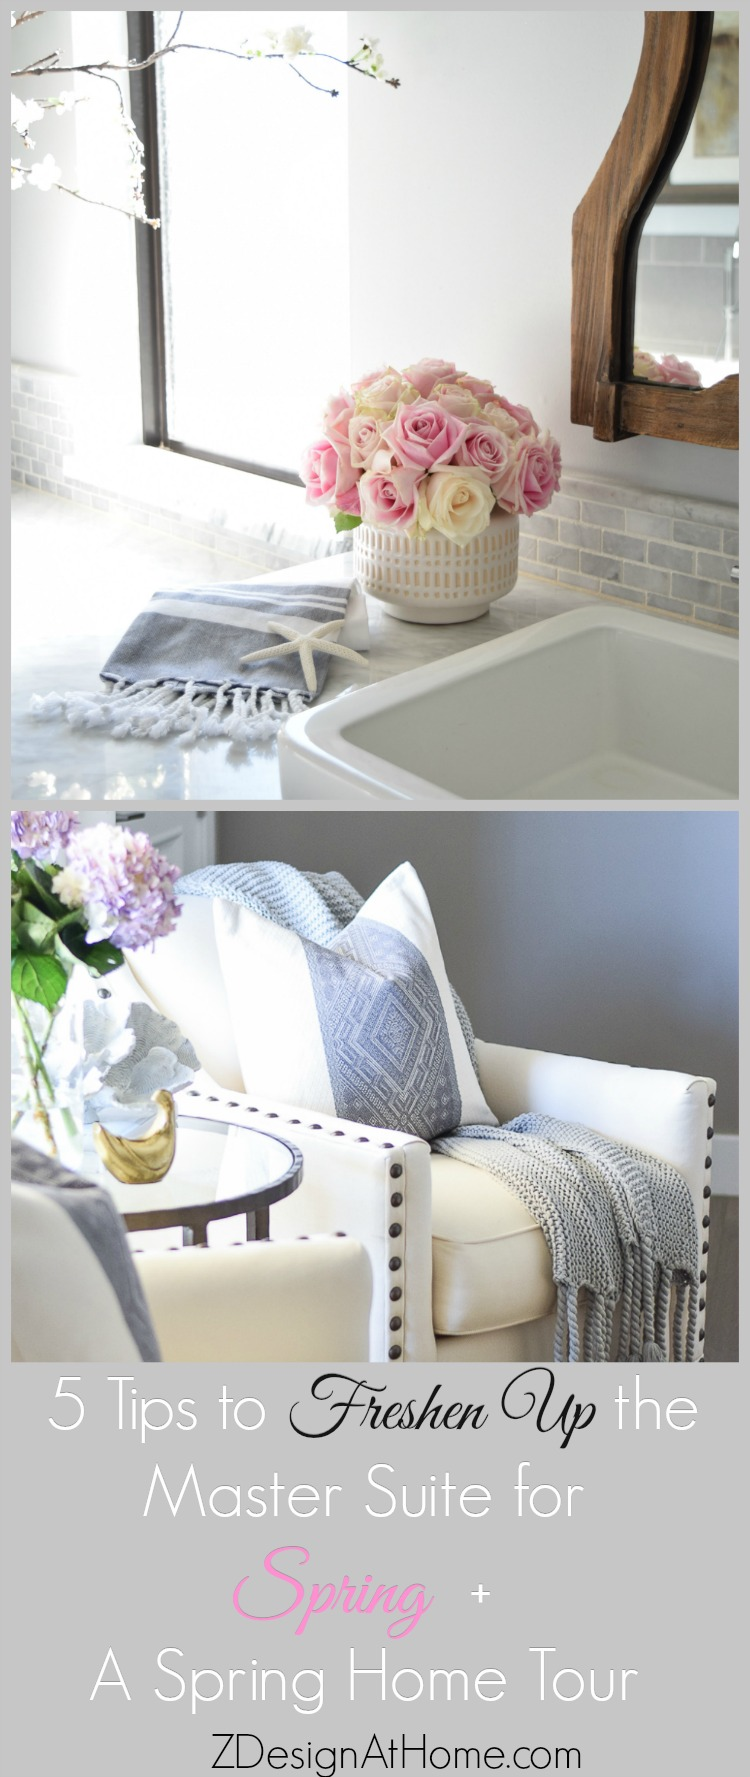 ZDesign At Home Master Suite Spring Home Tour plus 5 tips